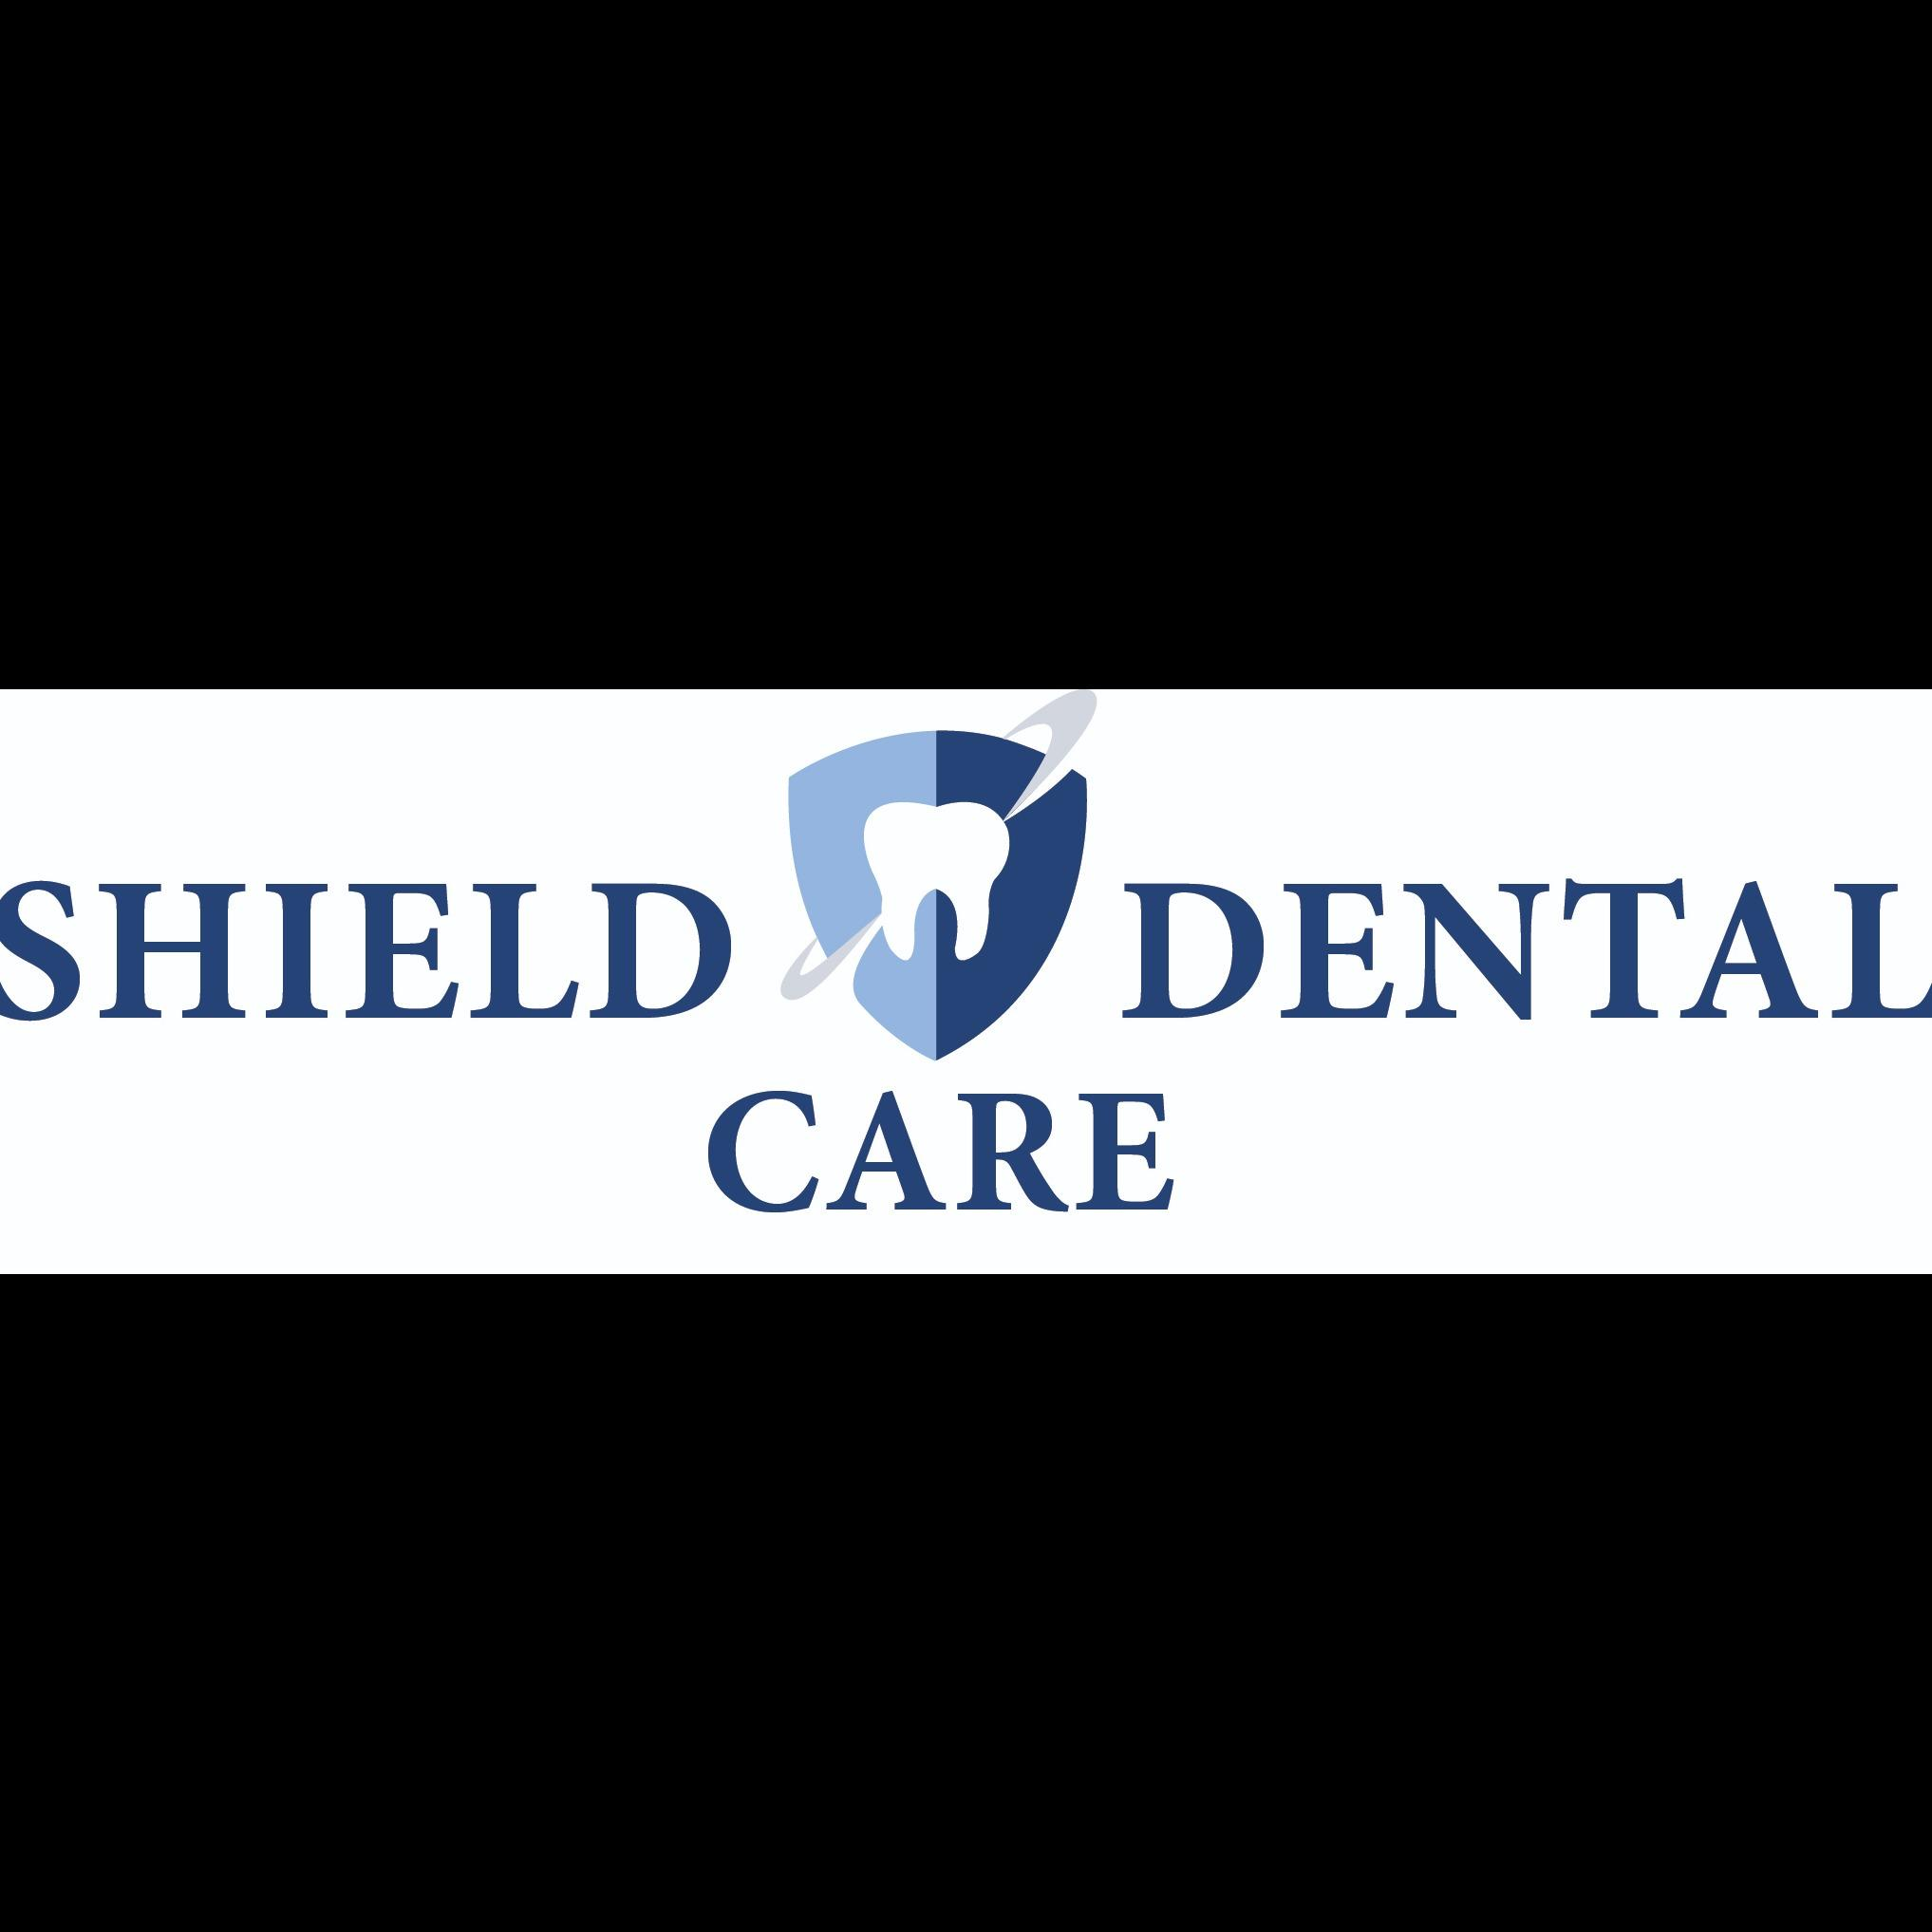 Shield Dental Care